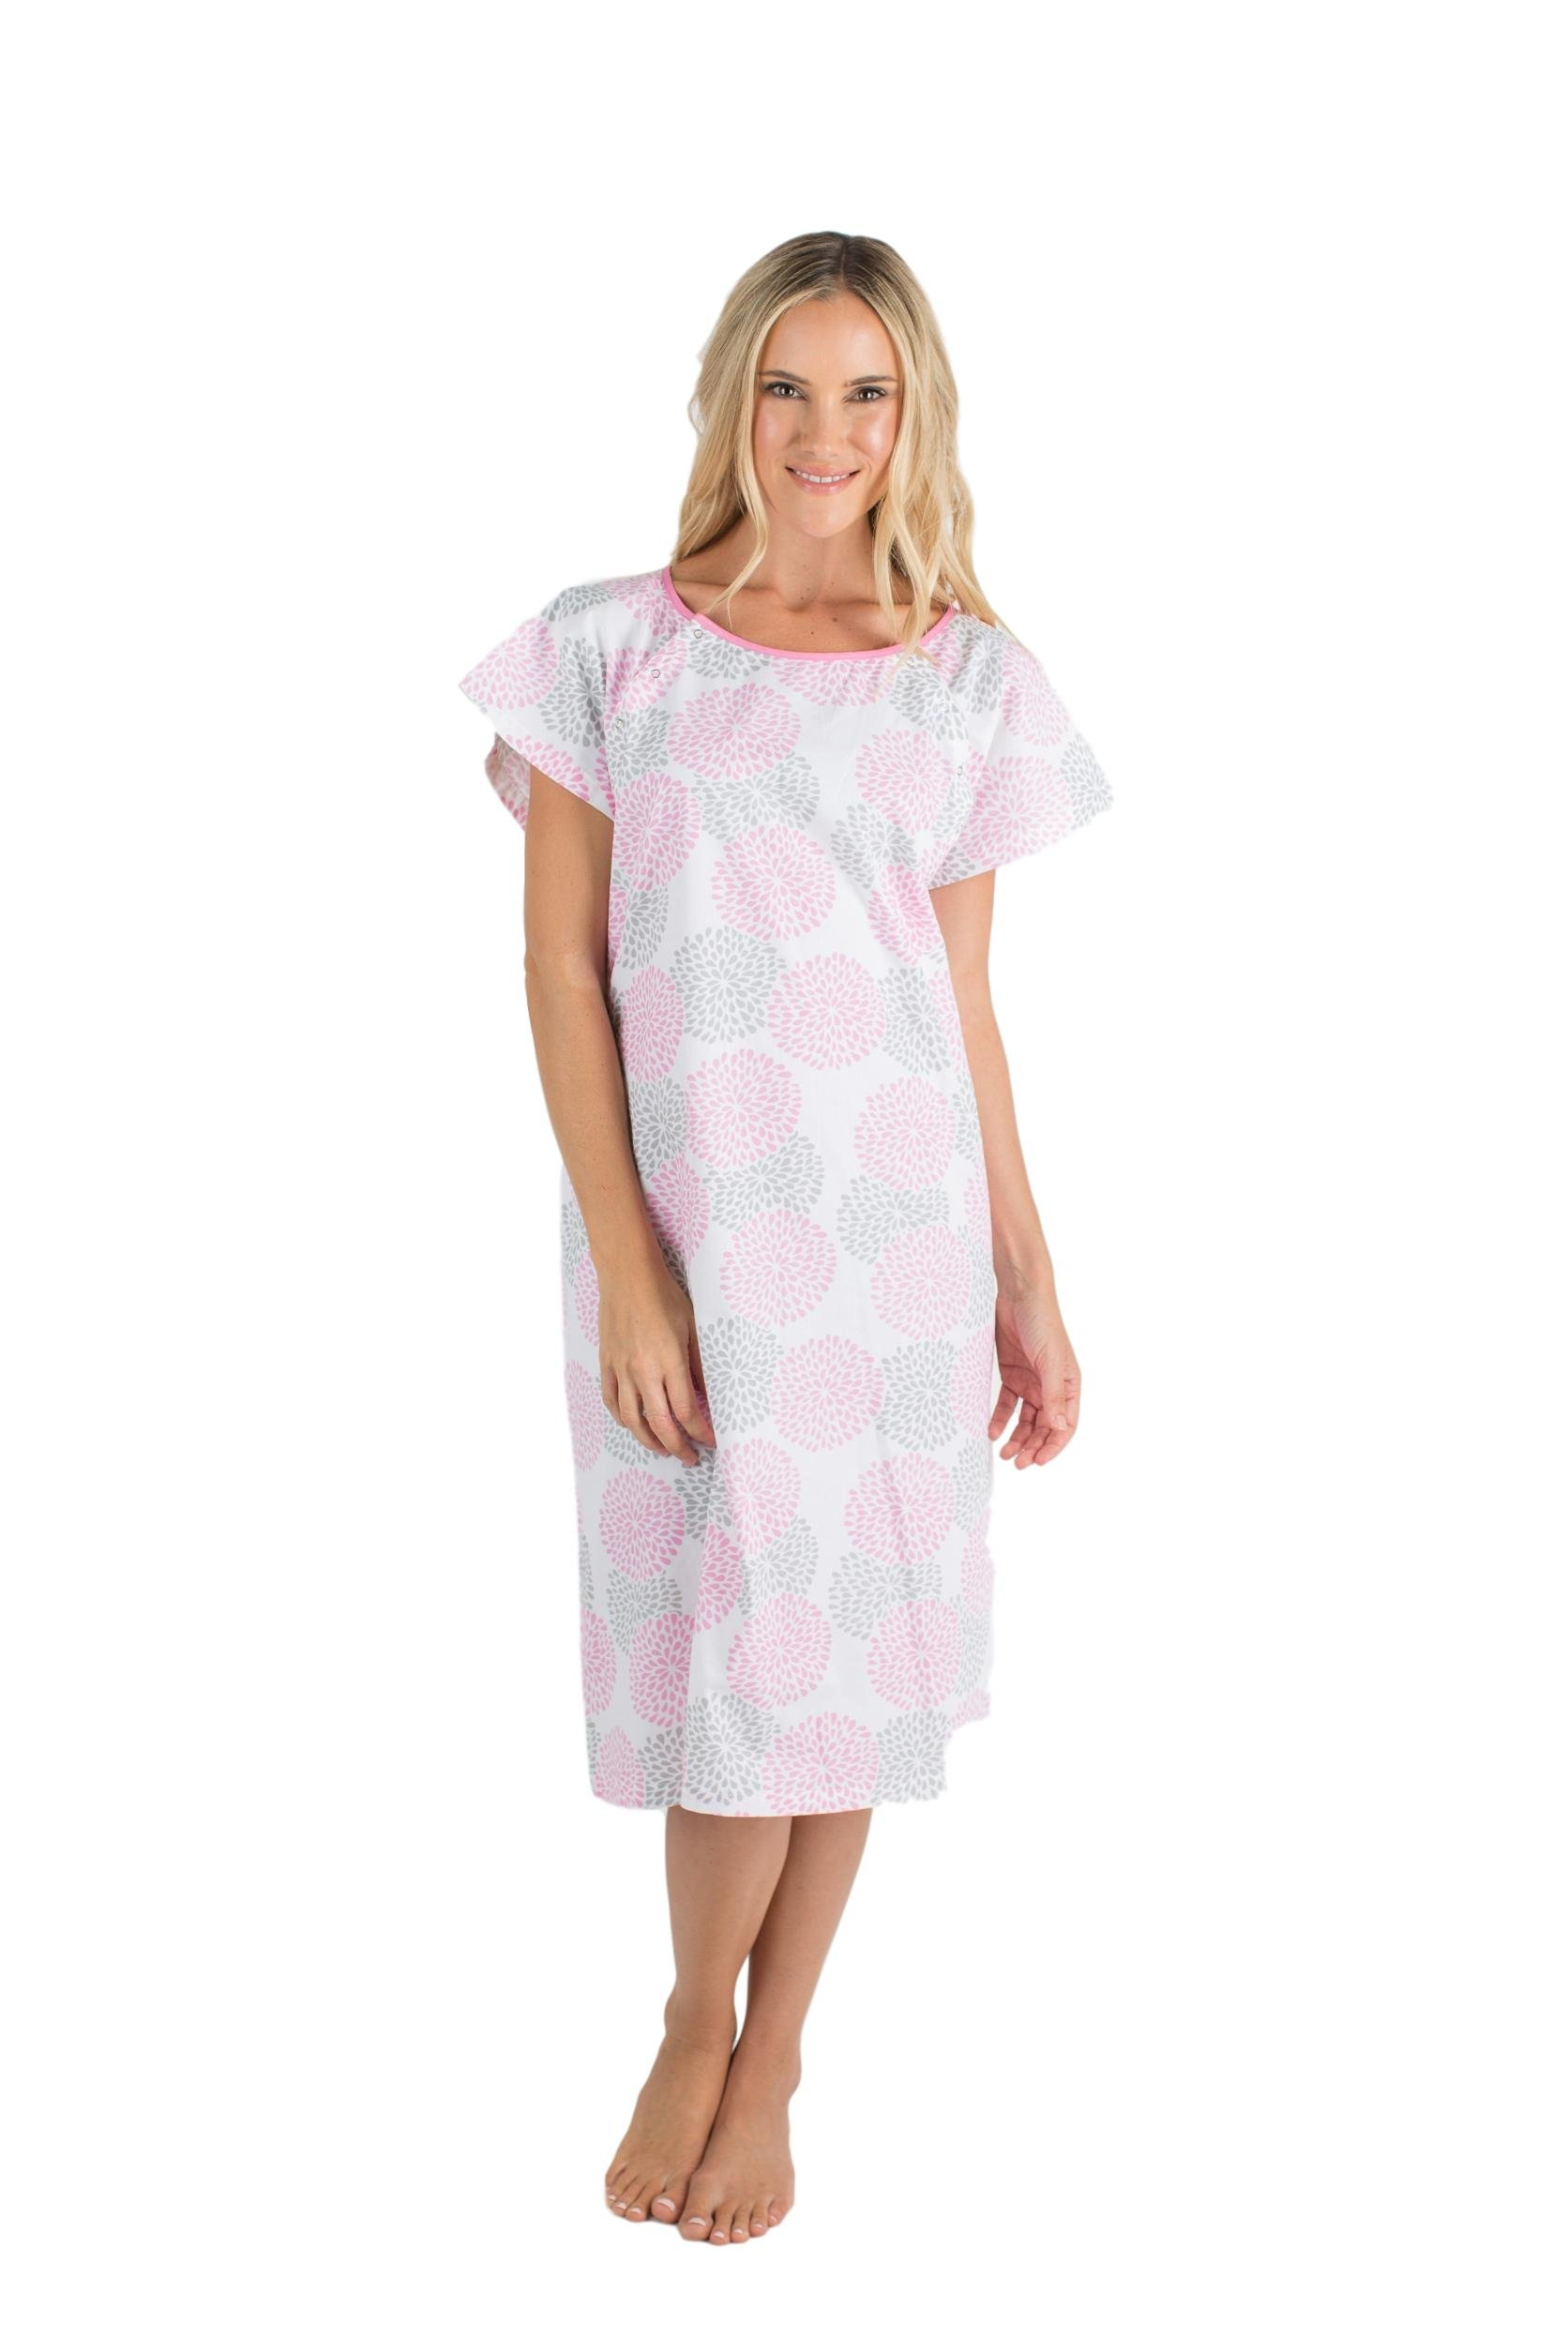 Gownies Hospital Patient Gown, Designer (S/M Size 0-10, Lilly)